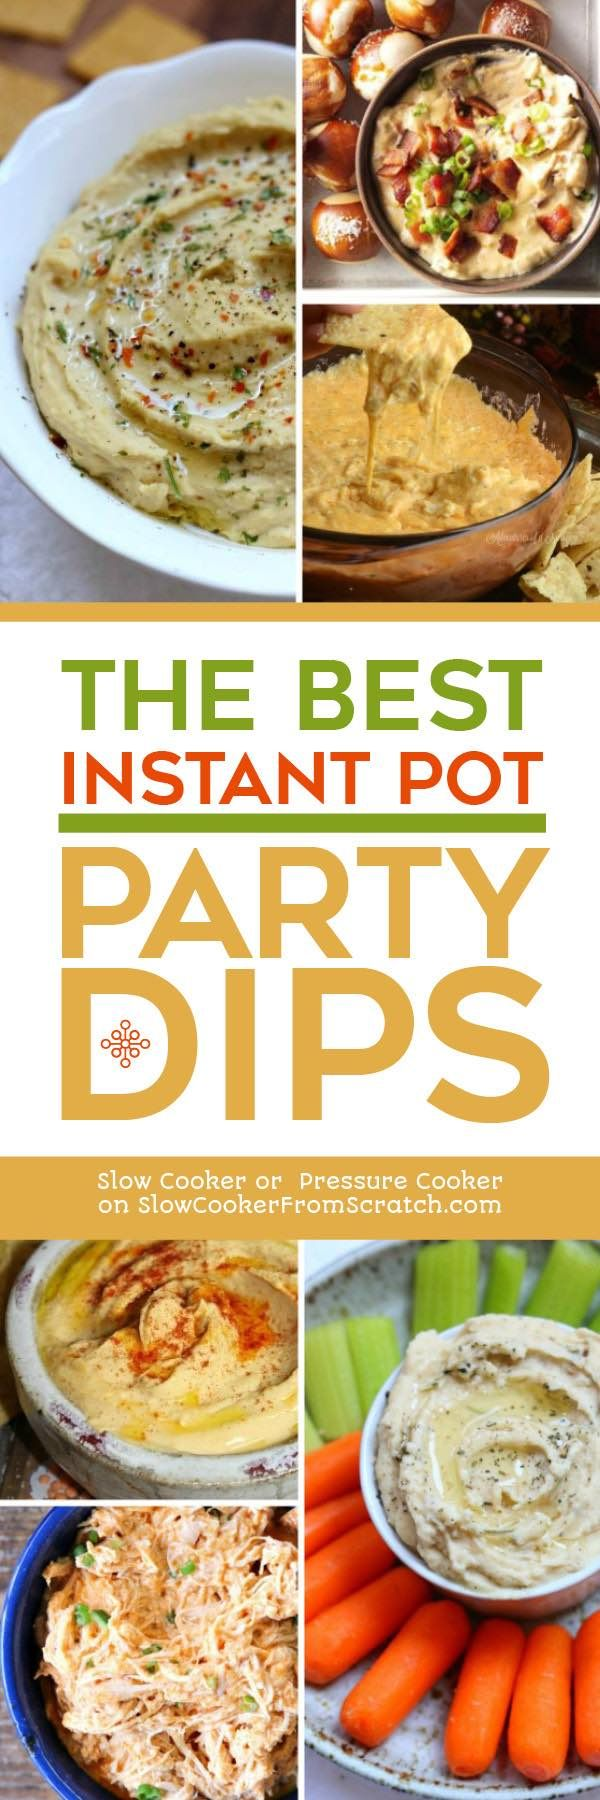 The BEST Instant Pot Party Dips found on Slow Cooker or Pressure Cooker at SlowCookerFromScratch.com